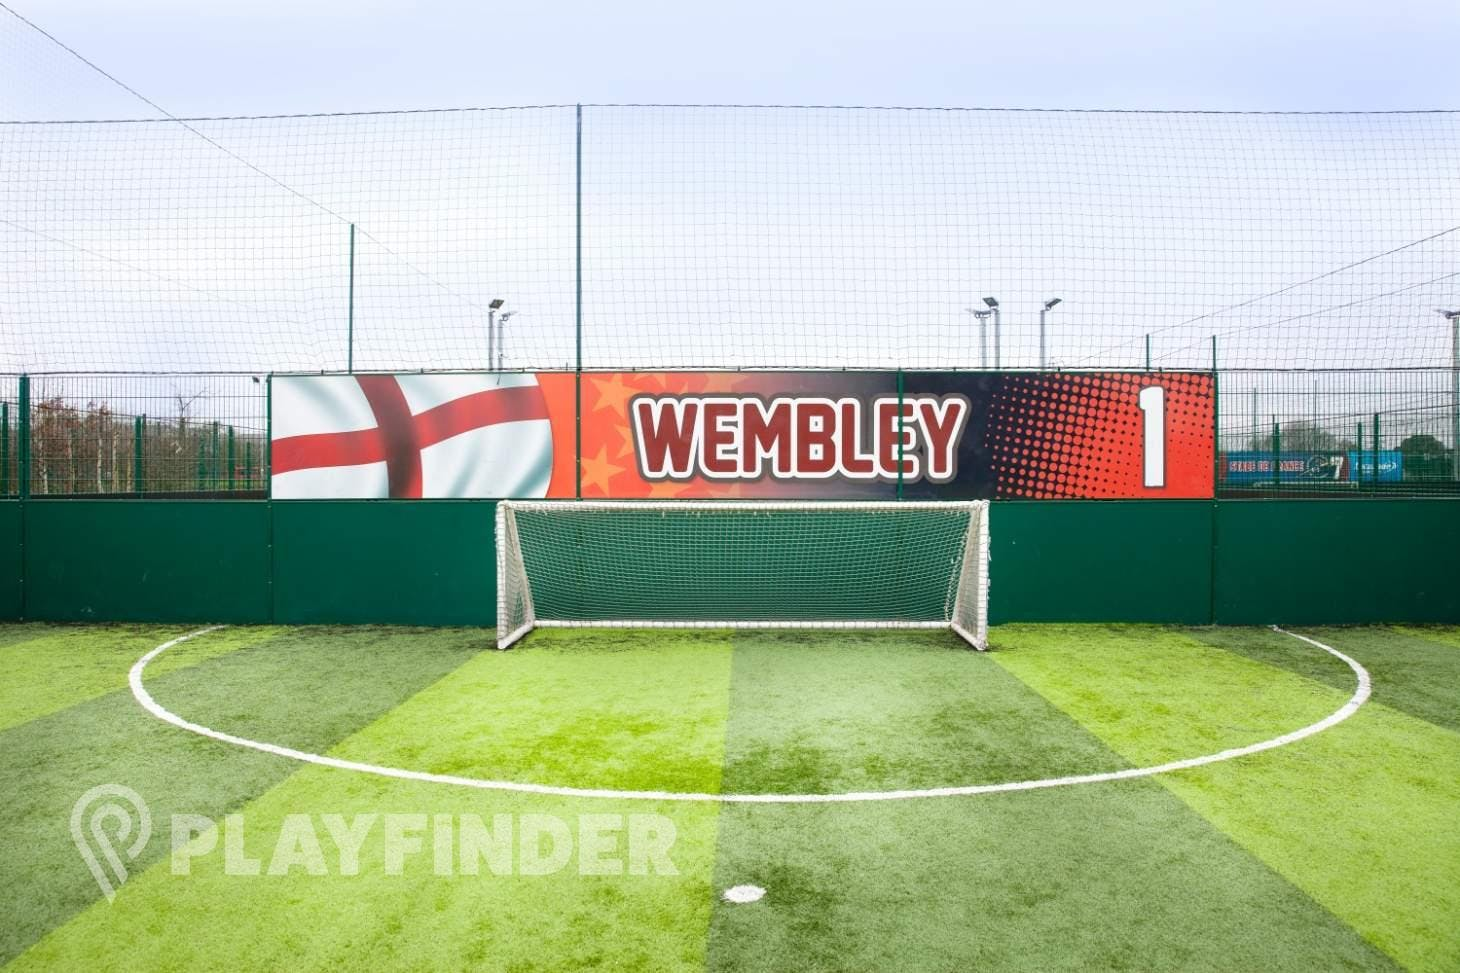 Goals Newcastle 5 a side | 3G Astroturf football pitch